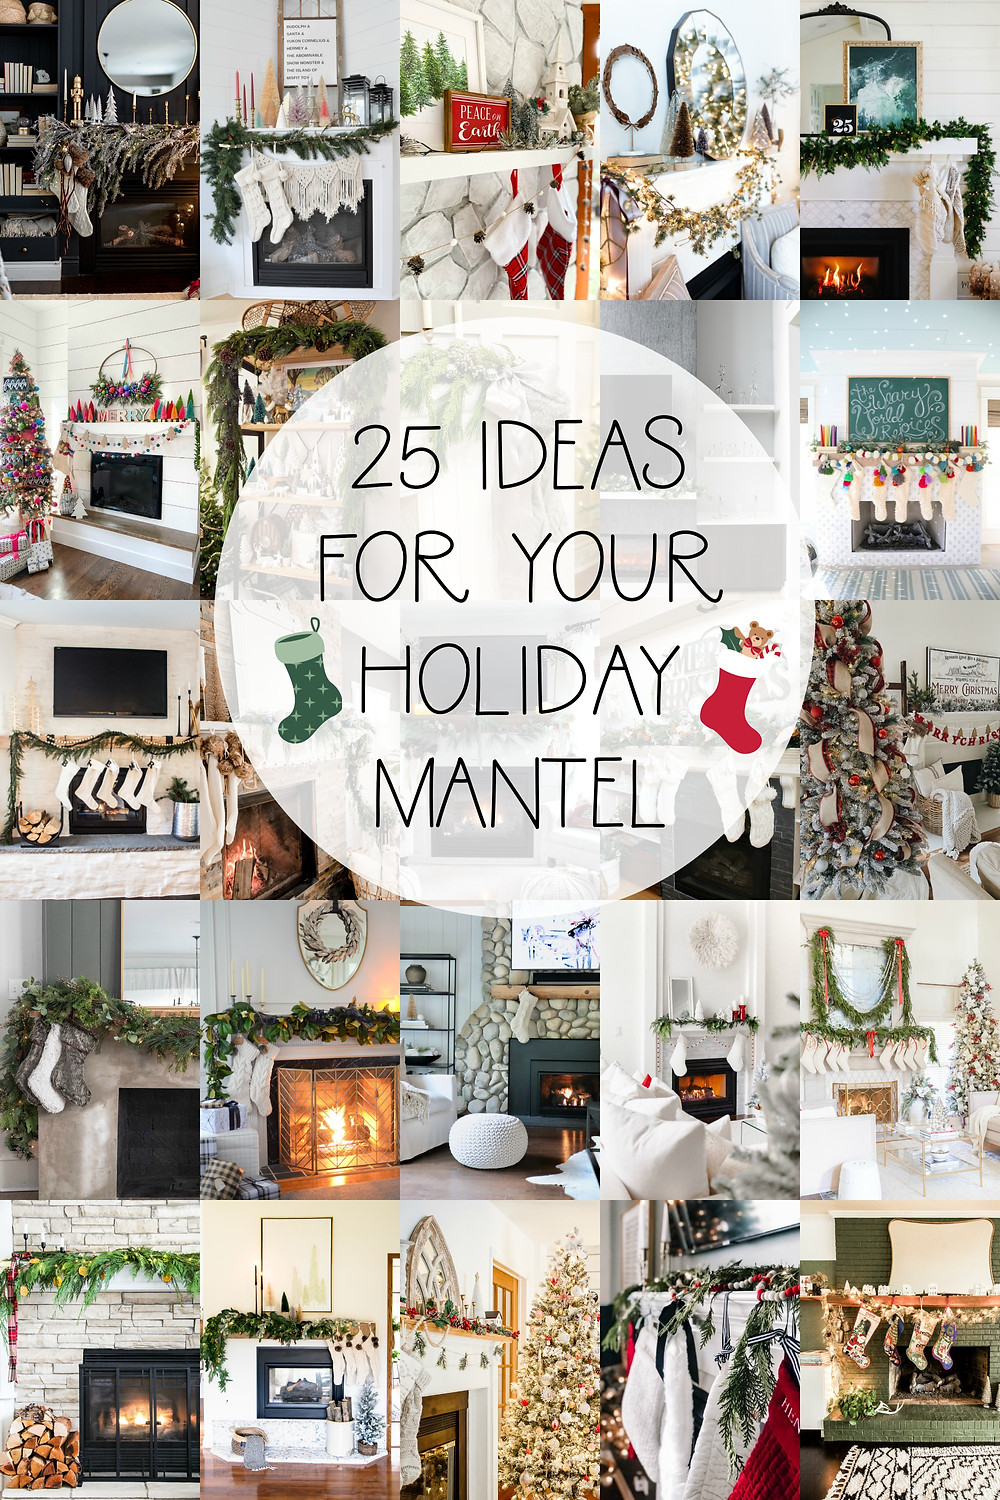 Style your shelves for the holidays using these great tips. Modern, minimalist styling for Christmas and the holiday season.